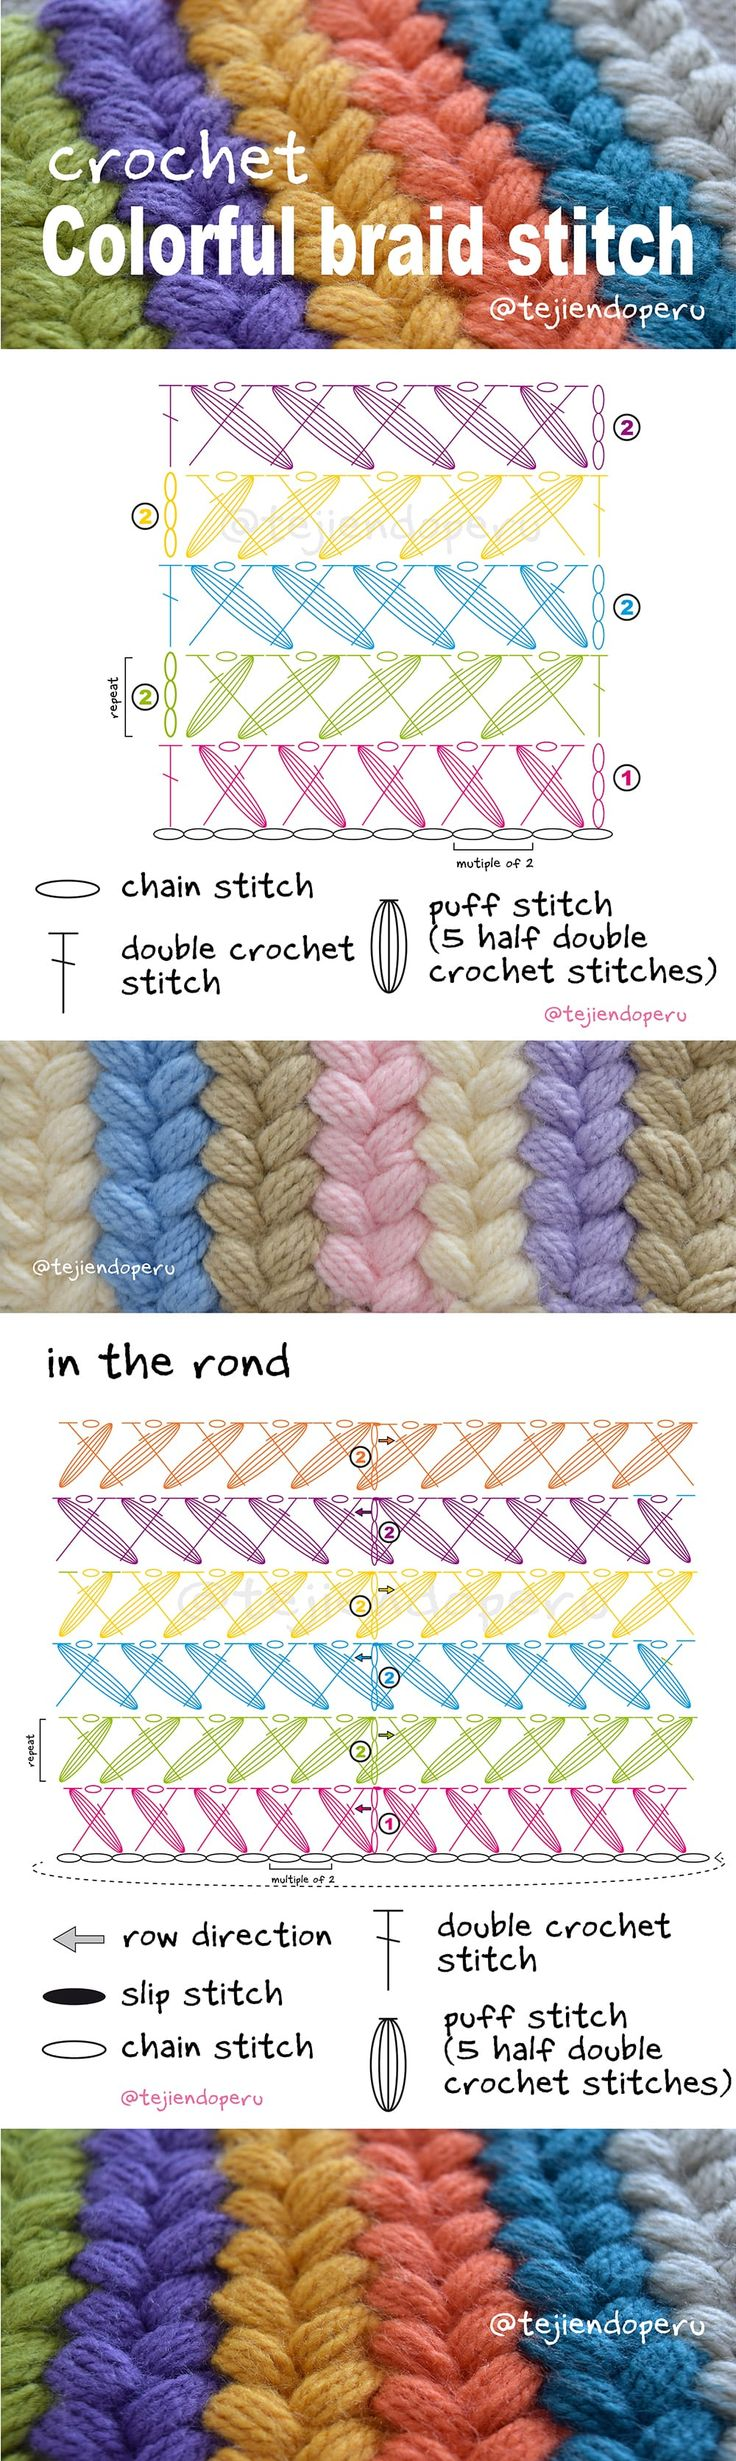 Colorful braid crochet stitch